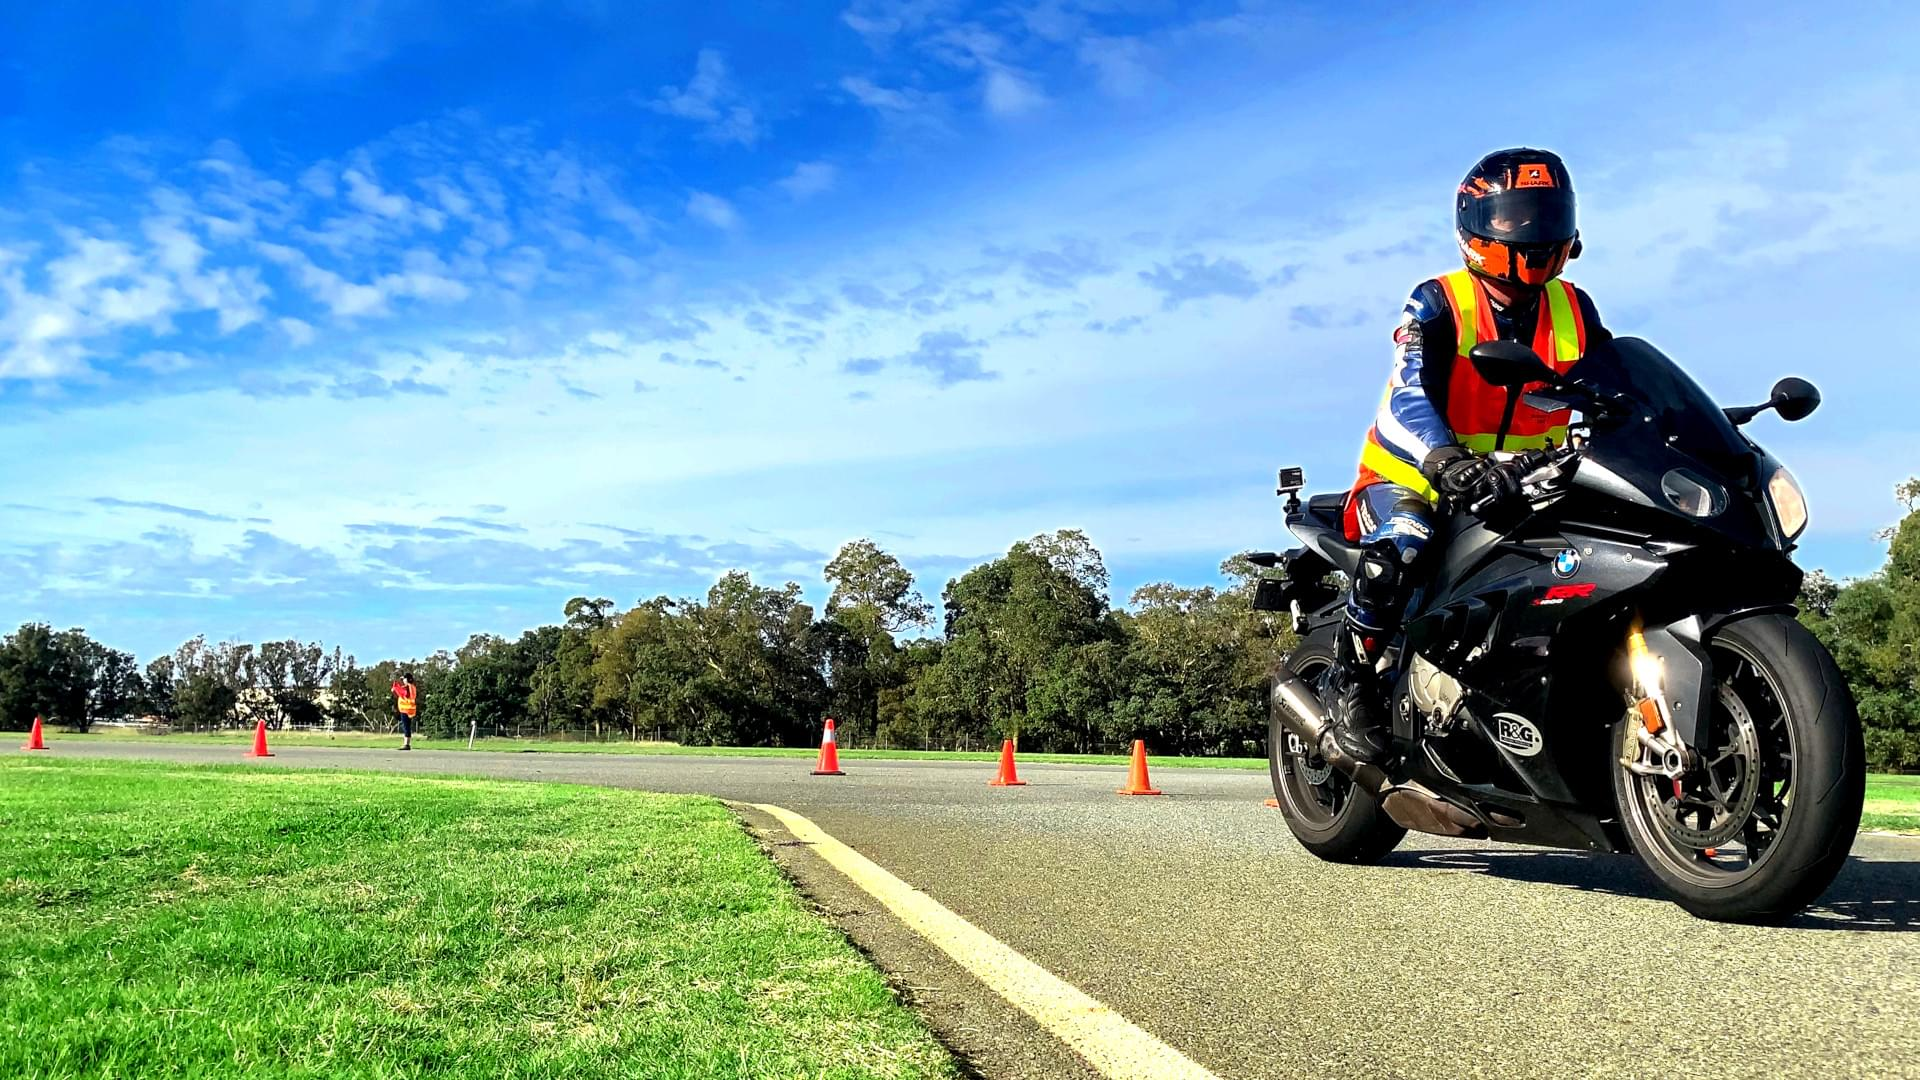 Motorcycle Trainer on BMW S1000RR